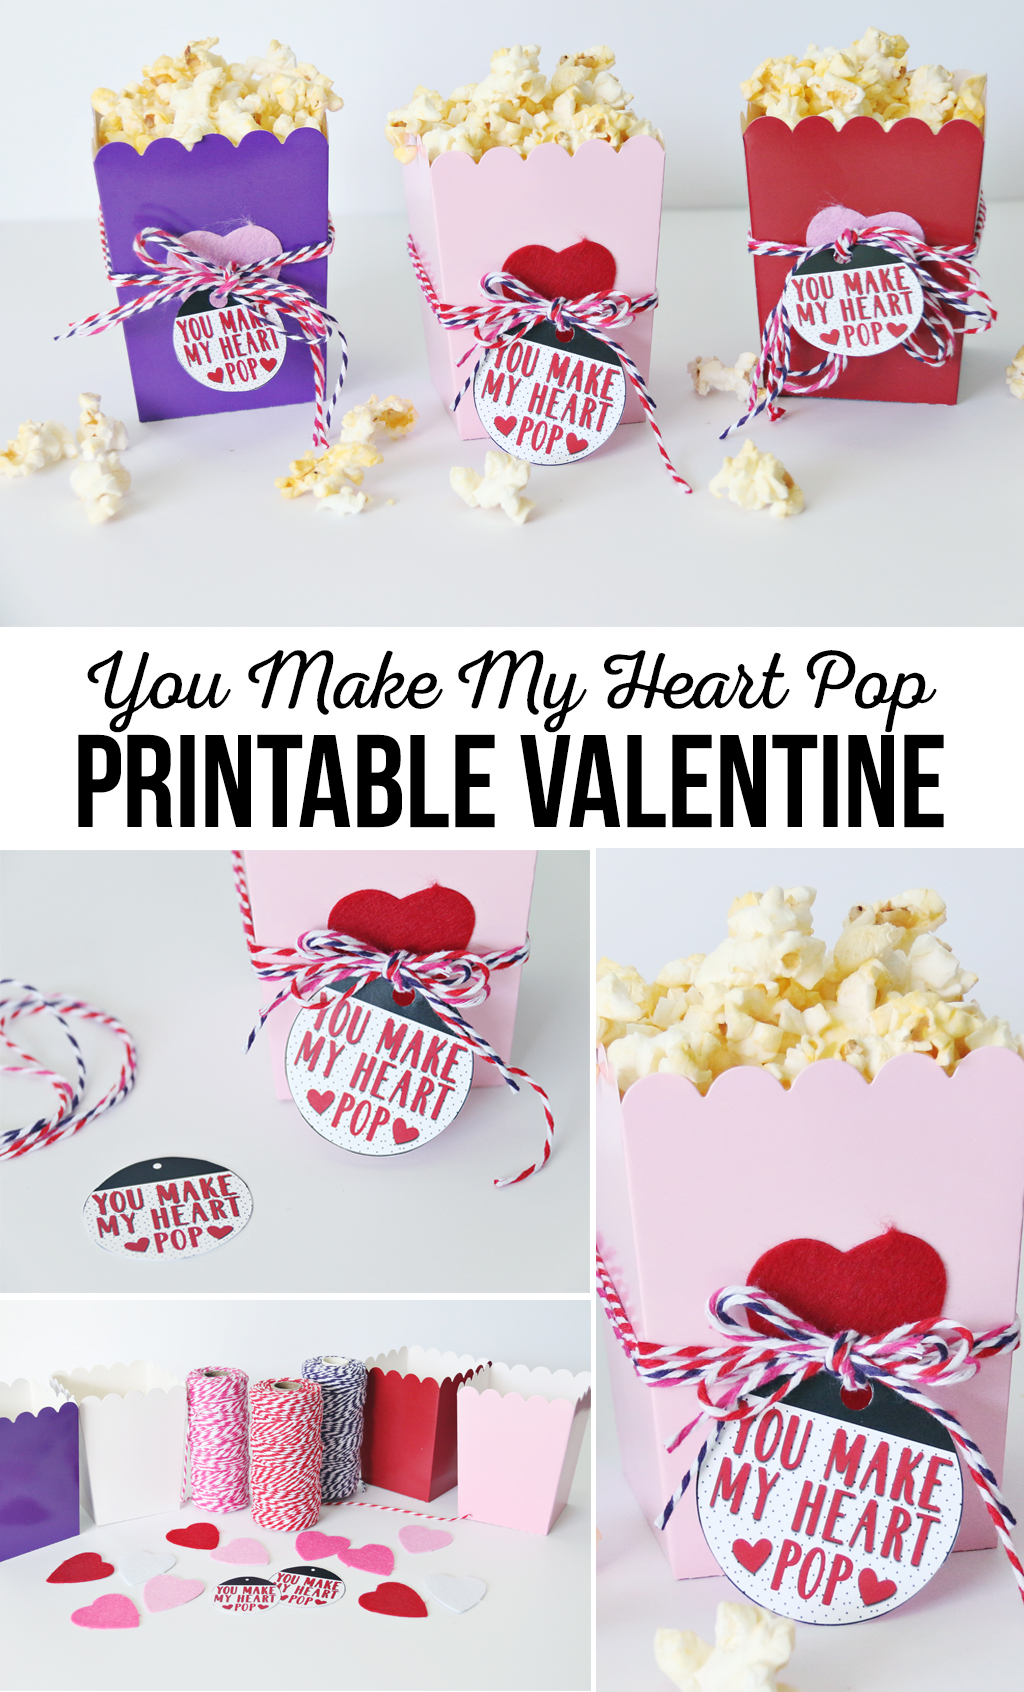 You Make My Heart Pop Printable Valentine